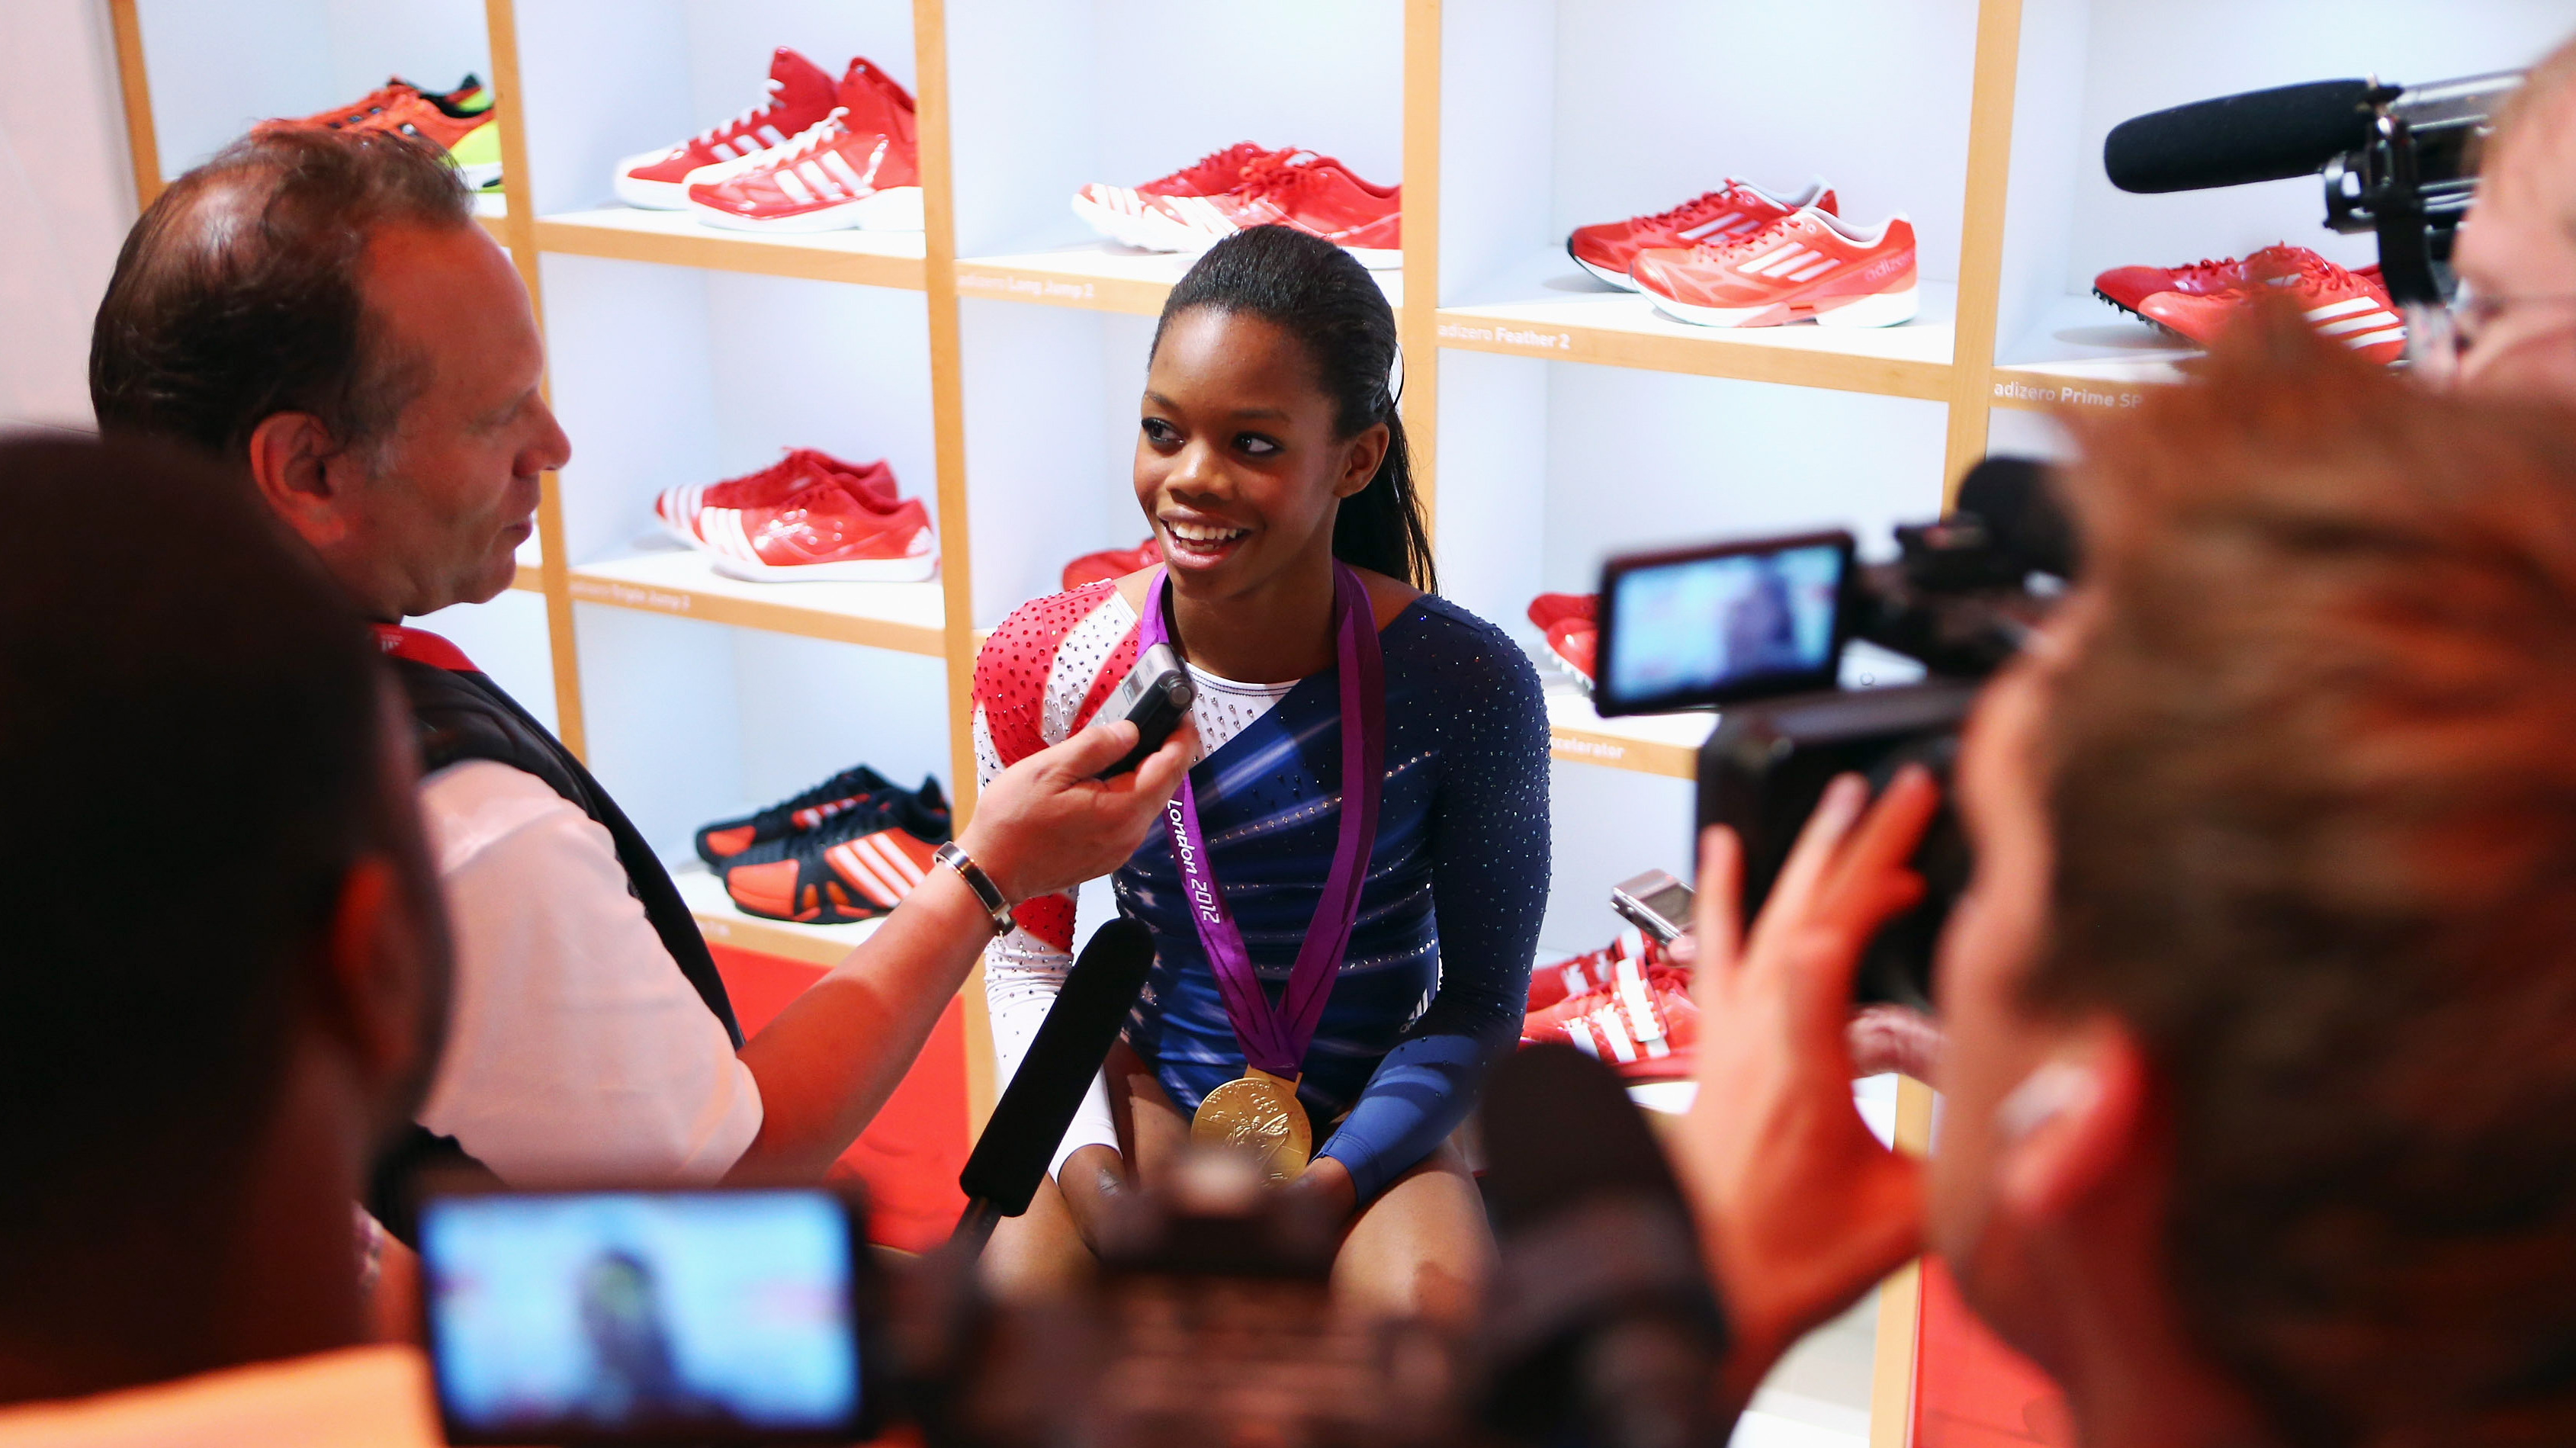 Gabby Douglas Gets One More Gold, For Winning Facebook Fans